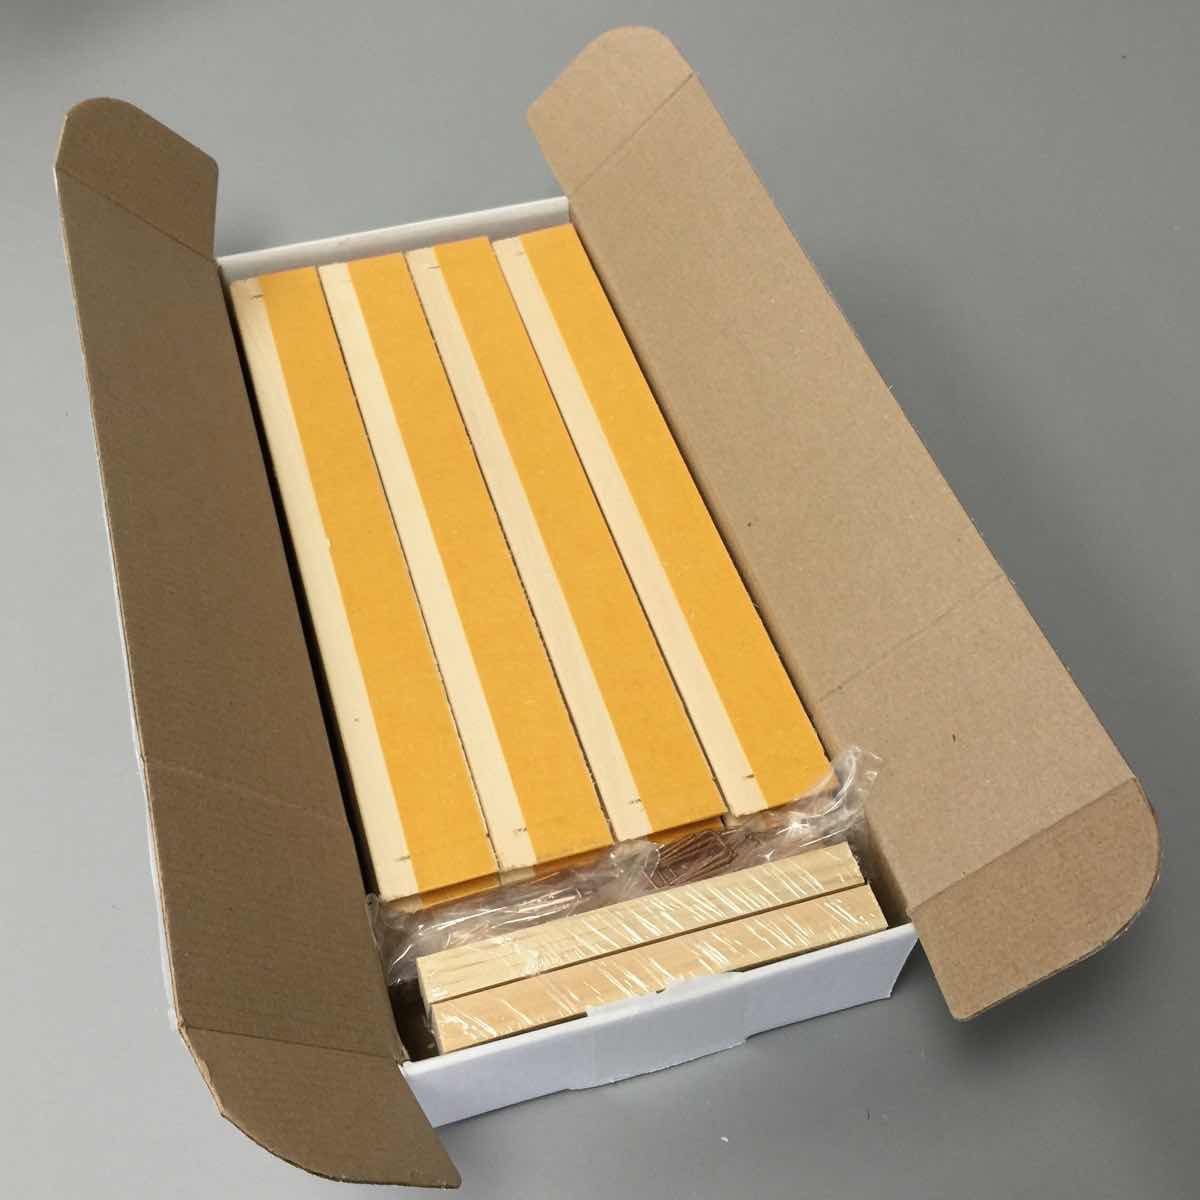 Packaged 16 bars / 4 frames to a box. Staples and tensioners included.